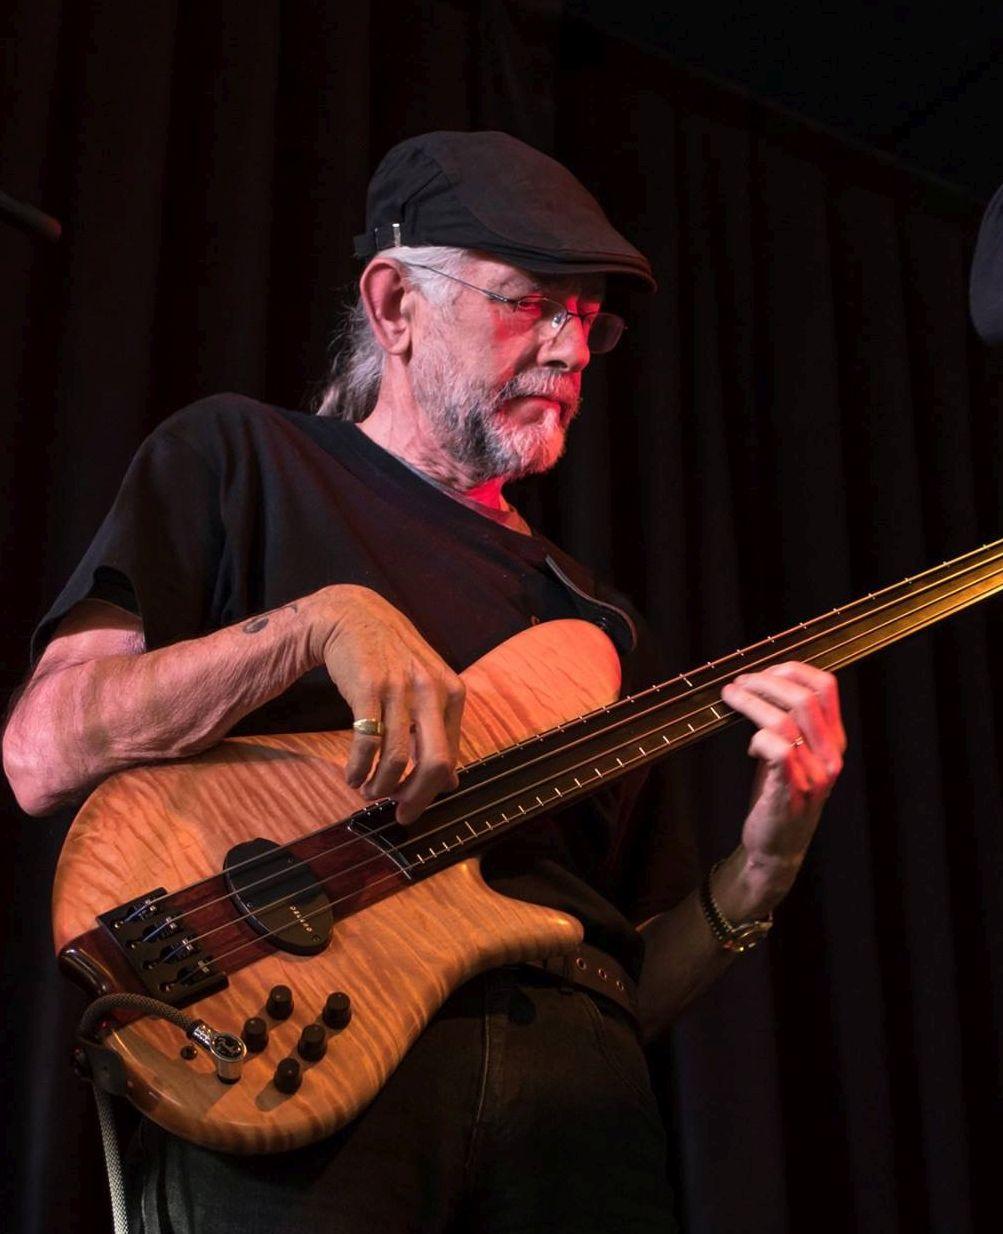 Paulo with Konig fretless, 2016 (photograph courtesy Sally Foster Photography)